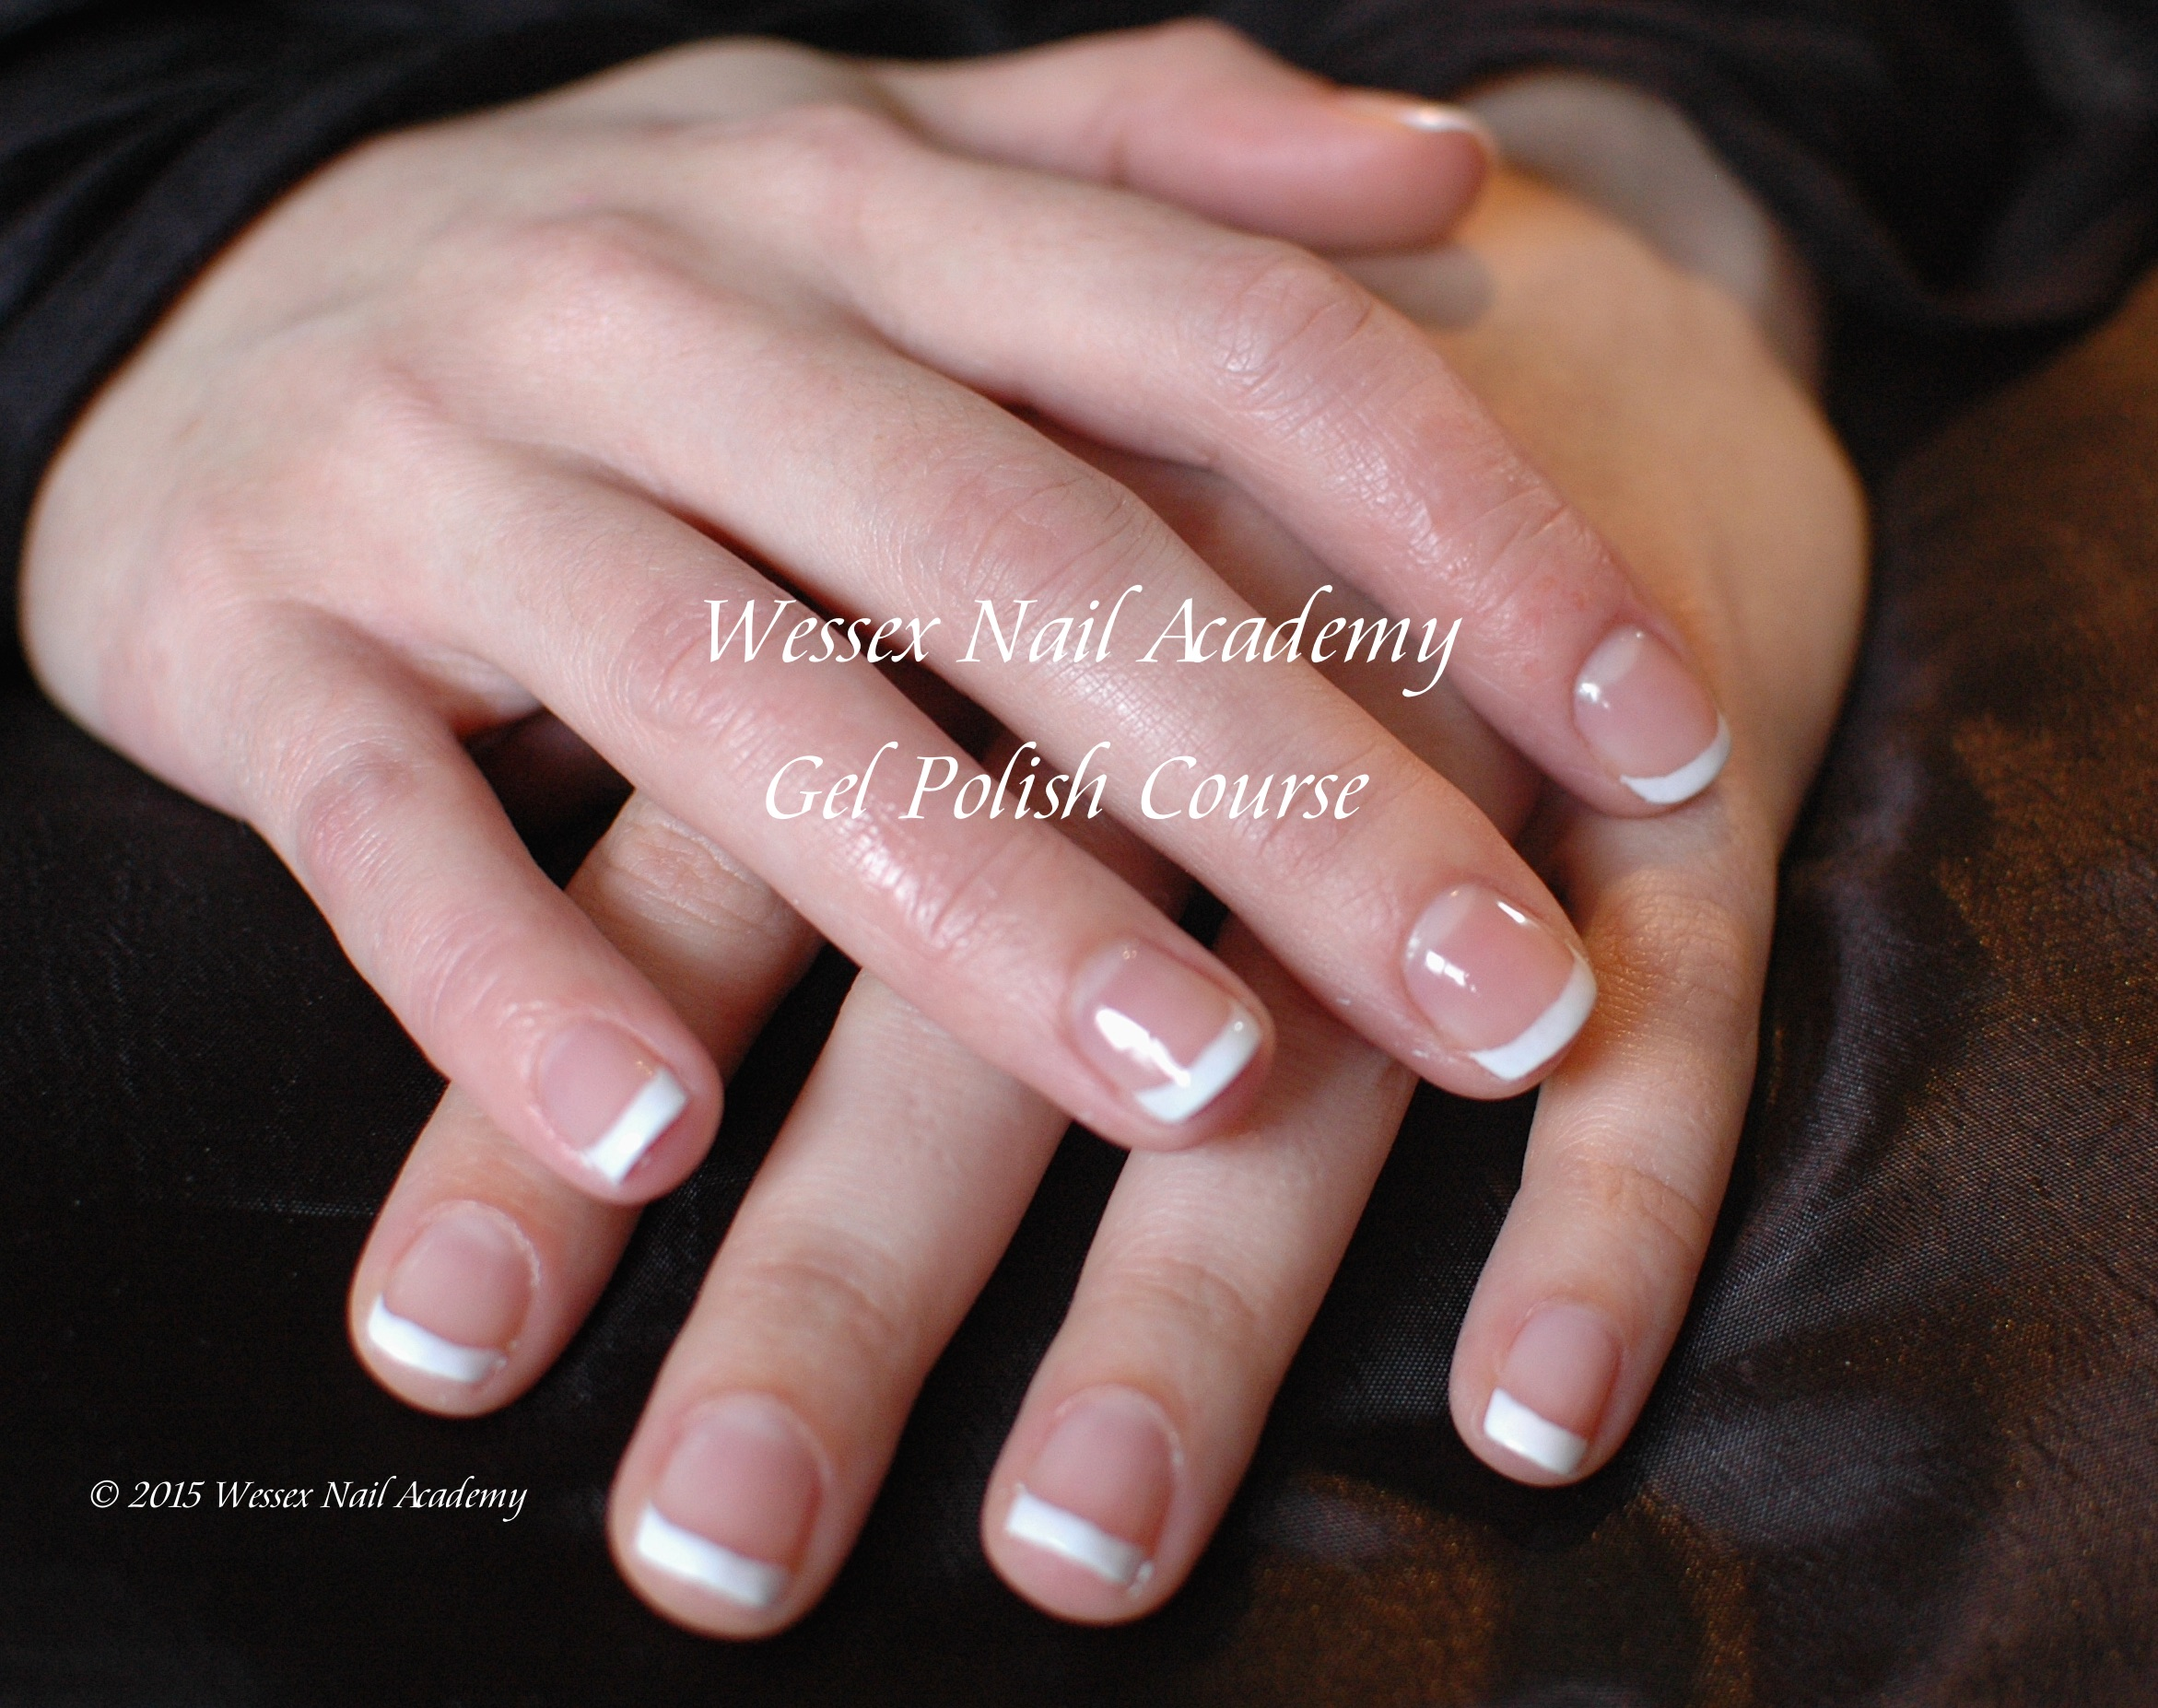 Gel Polish Beginners Manicure Student Work, Nail extension training , nail training course, Okeford Fitzpaine, Dorset